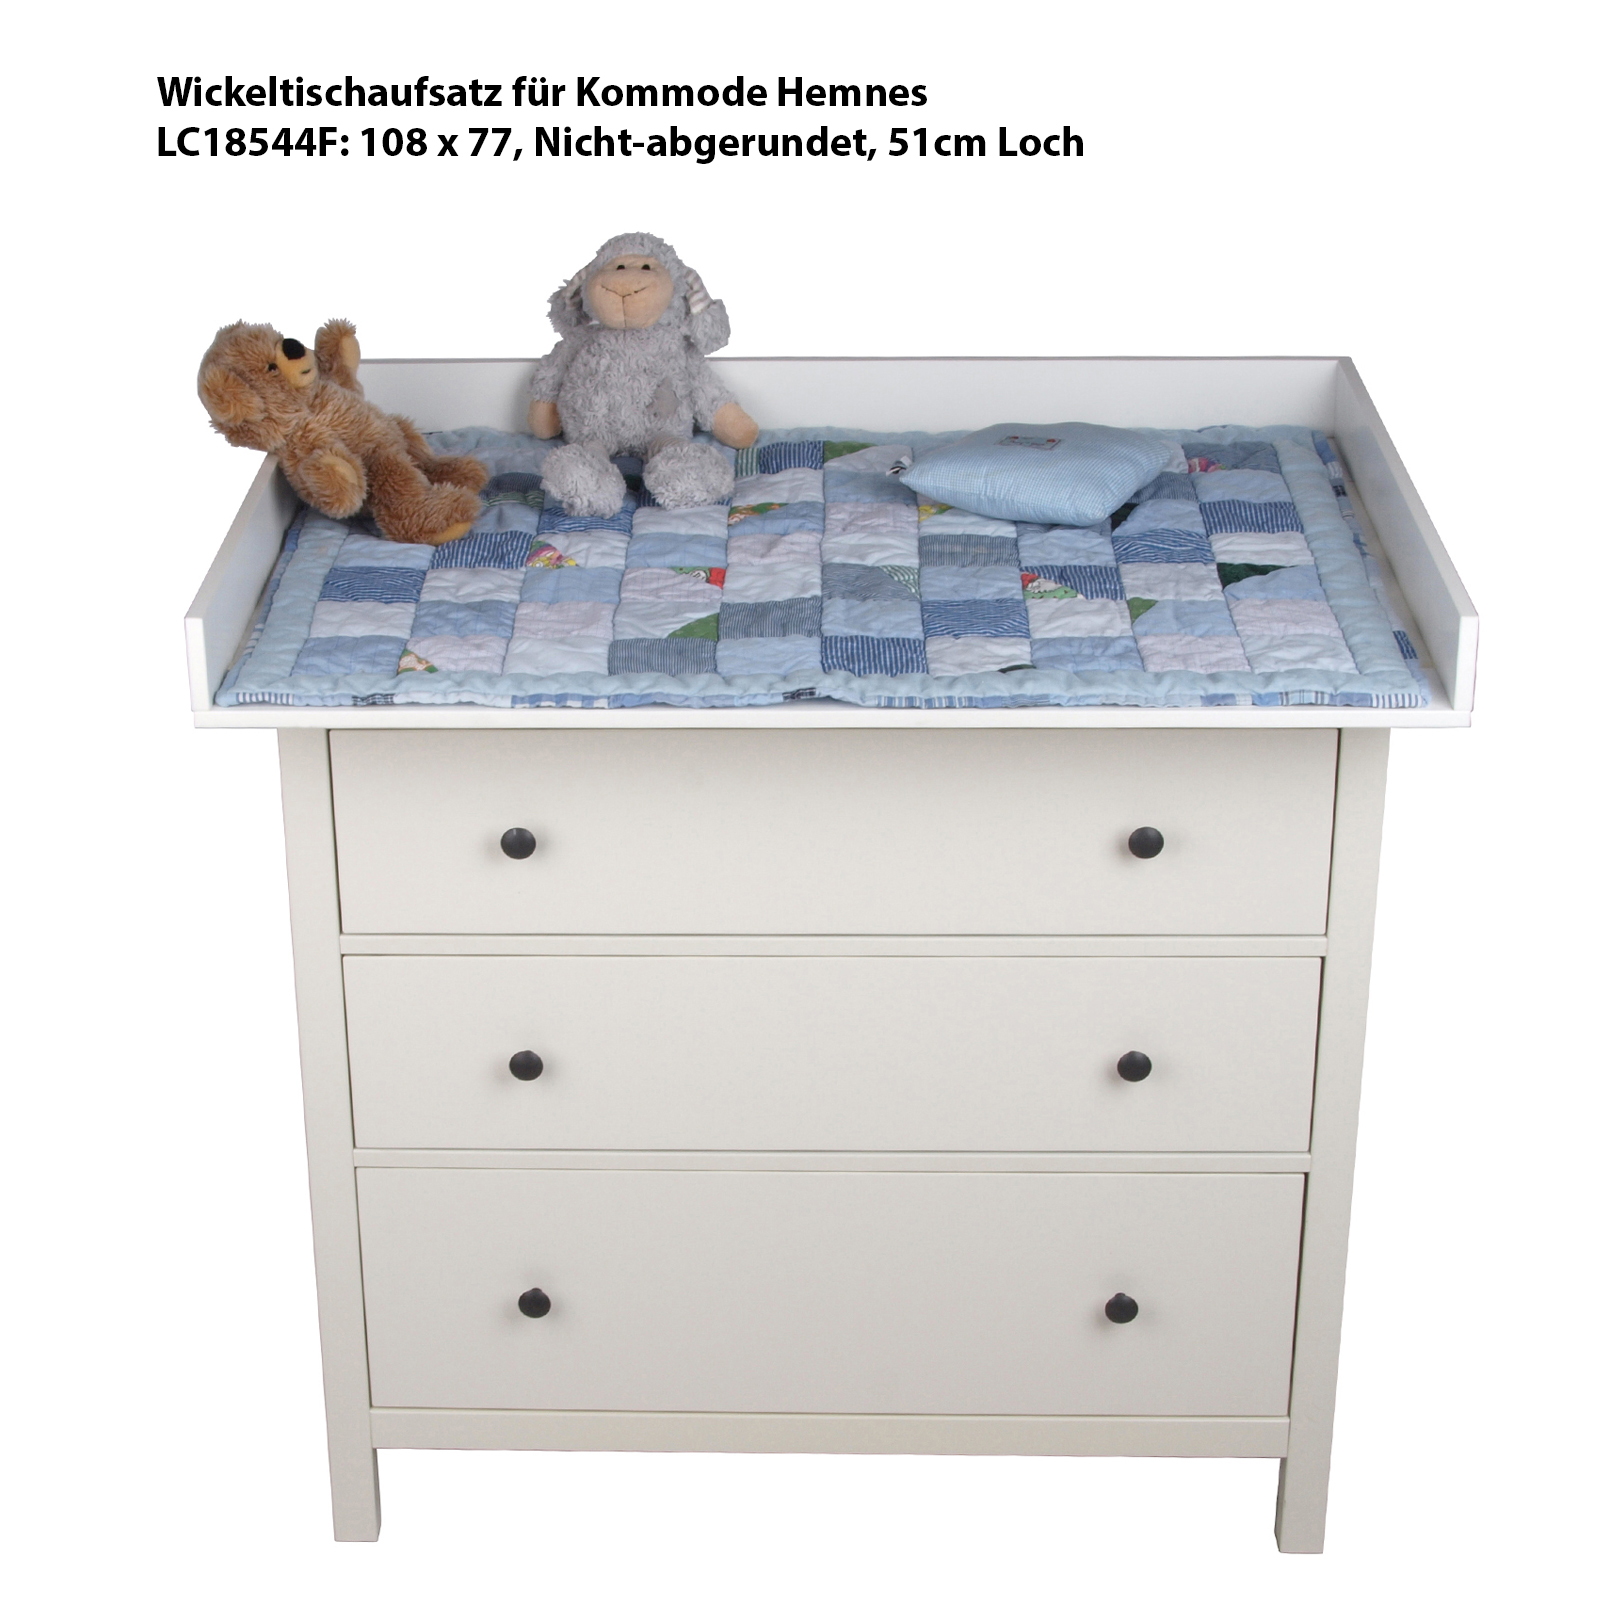 wickeltischaufsatz xxl wickelaufsatz f r ikea kommode malm. Black Bedroom Furniture Sets. Home Design Ideas